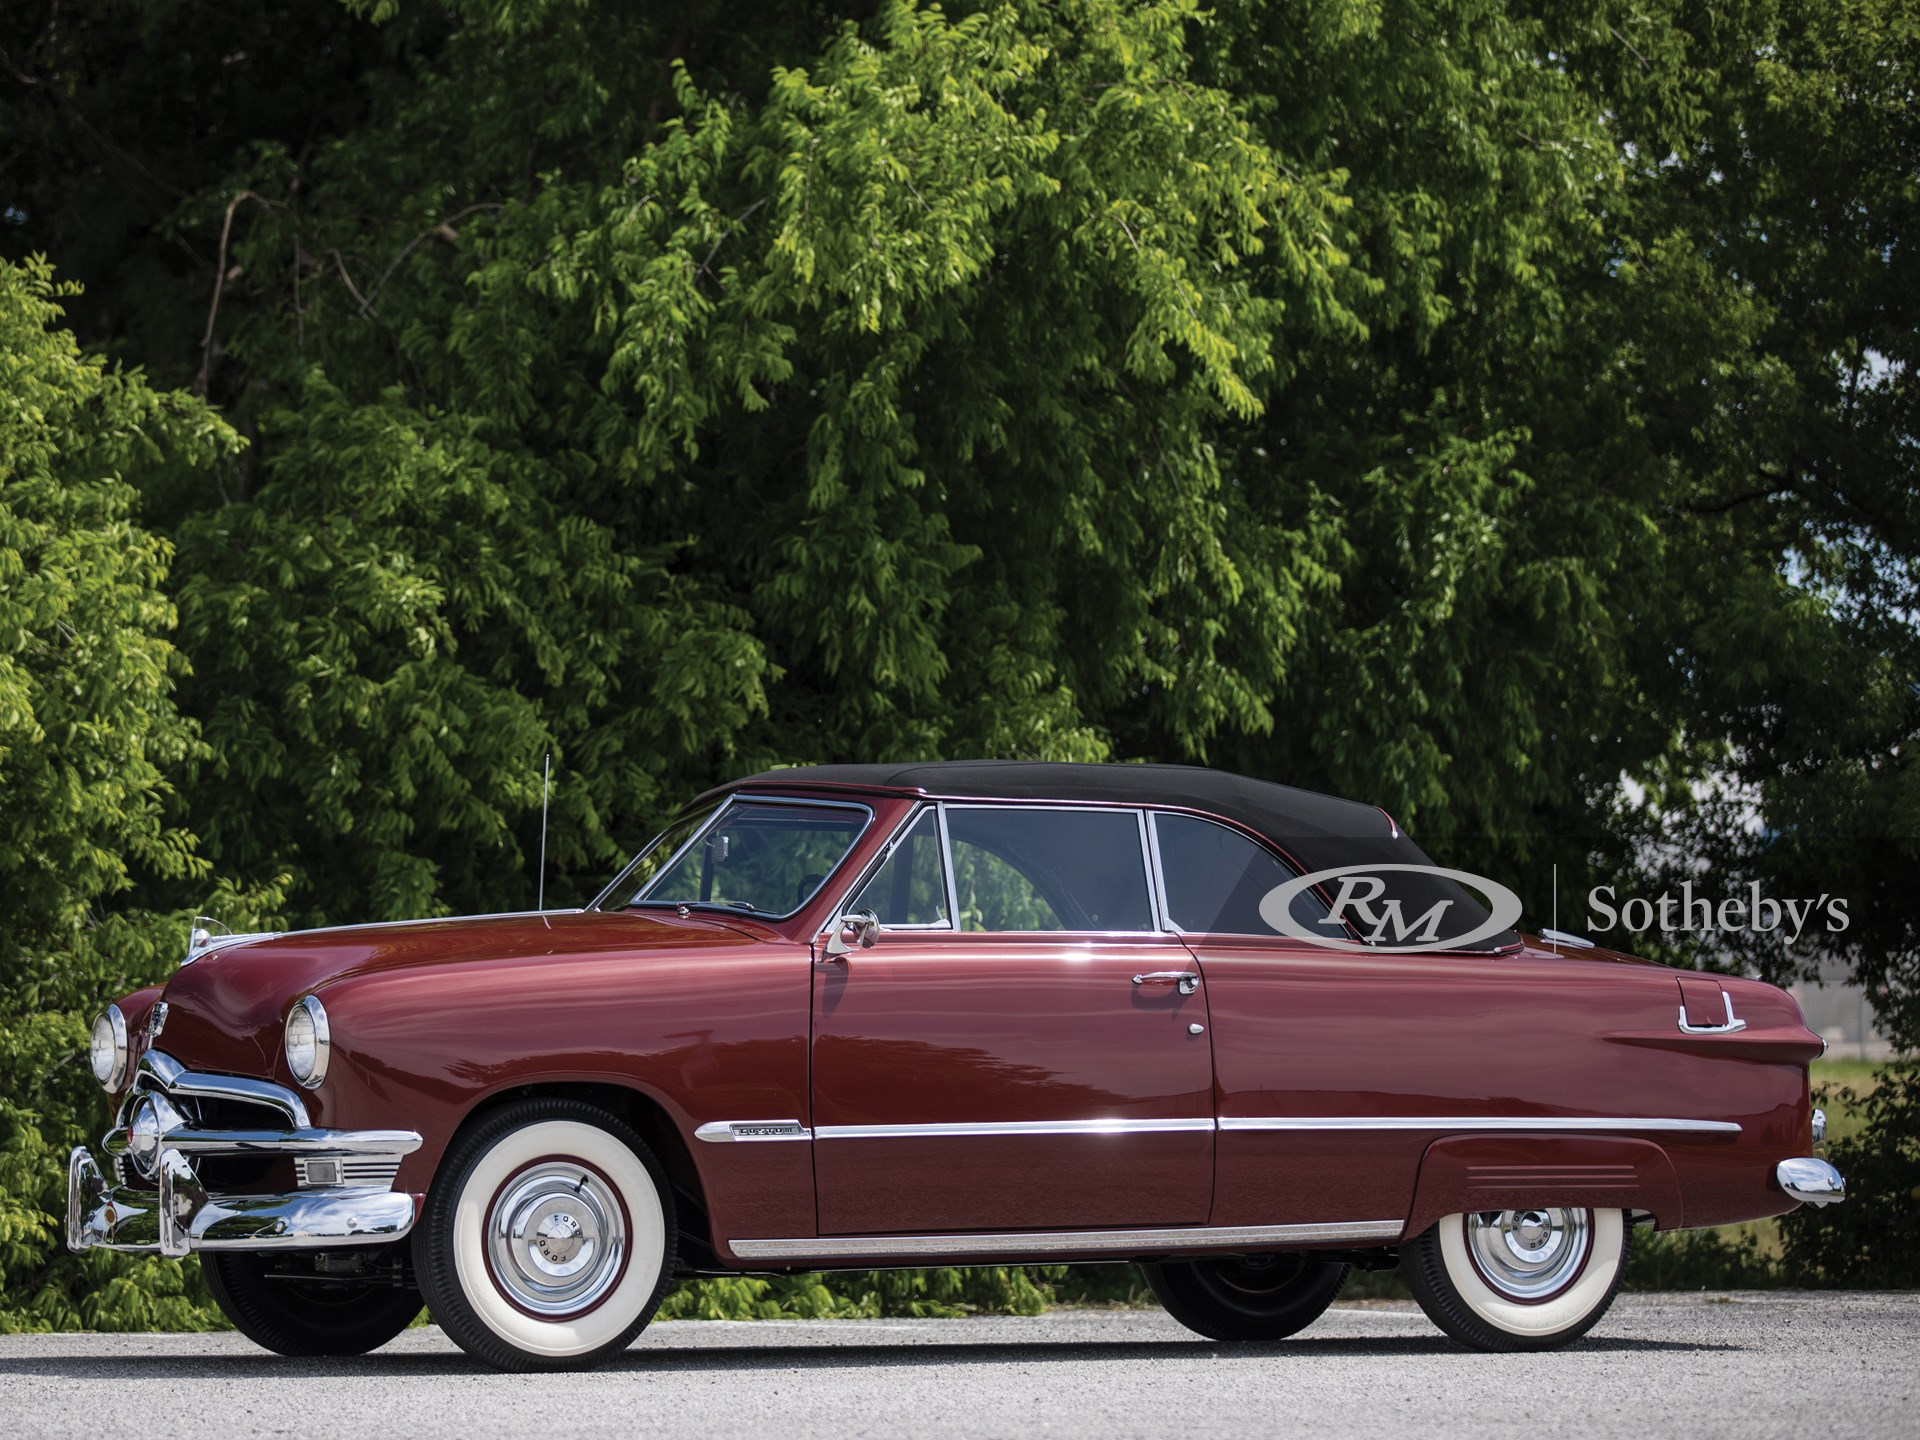 1950 Ford Custom Deluxe Convertible The Dingman Collection Rm Auctions